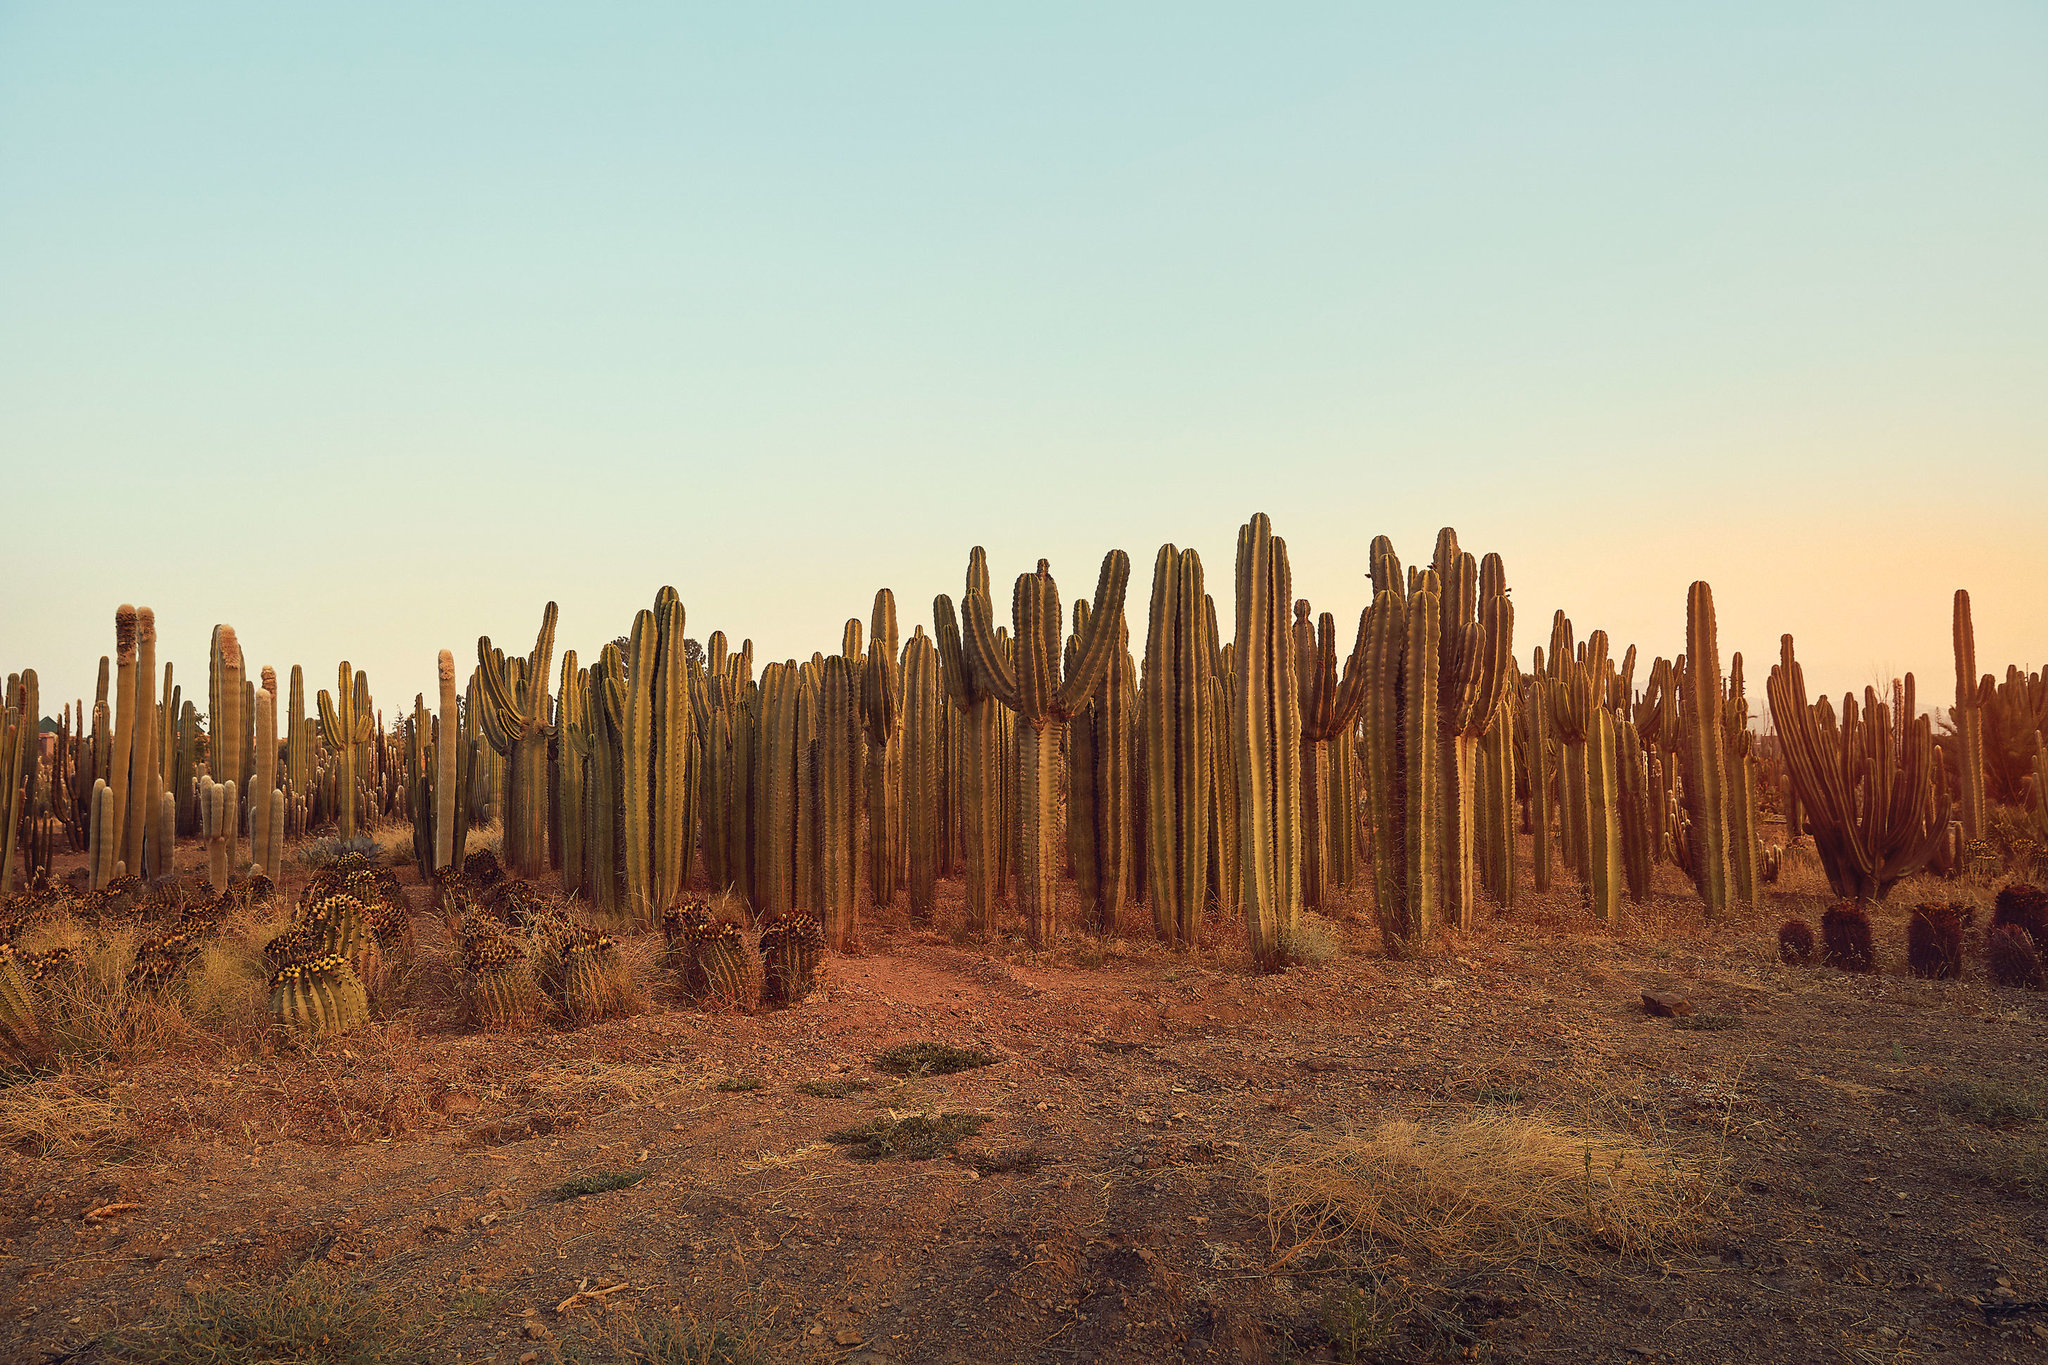 One of the Largest Cactus Farms in Africa  The New York Times